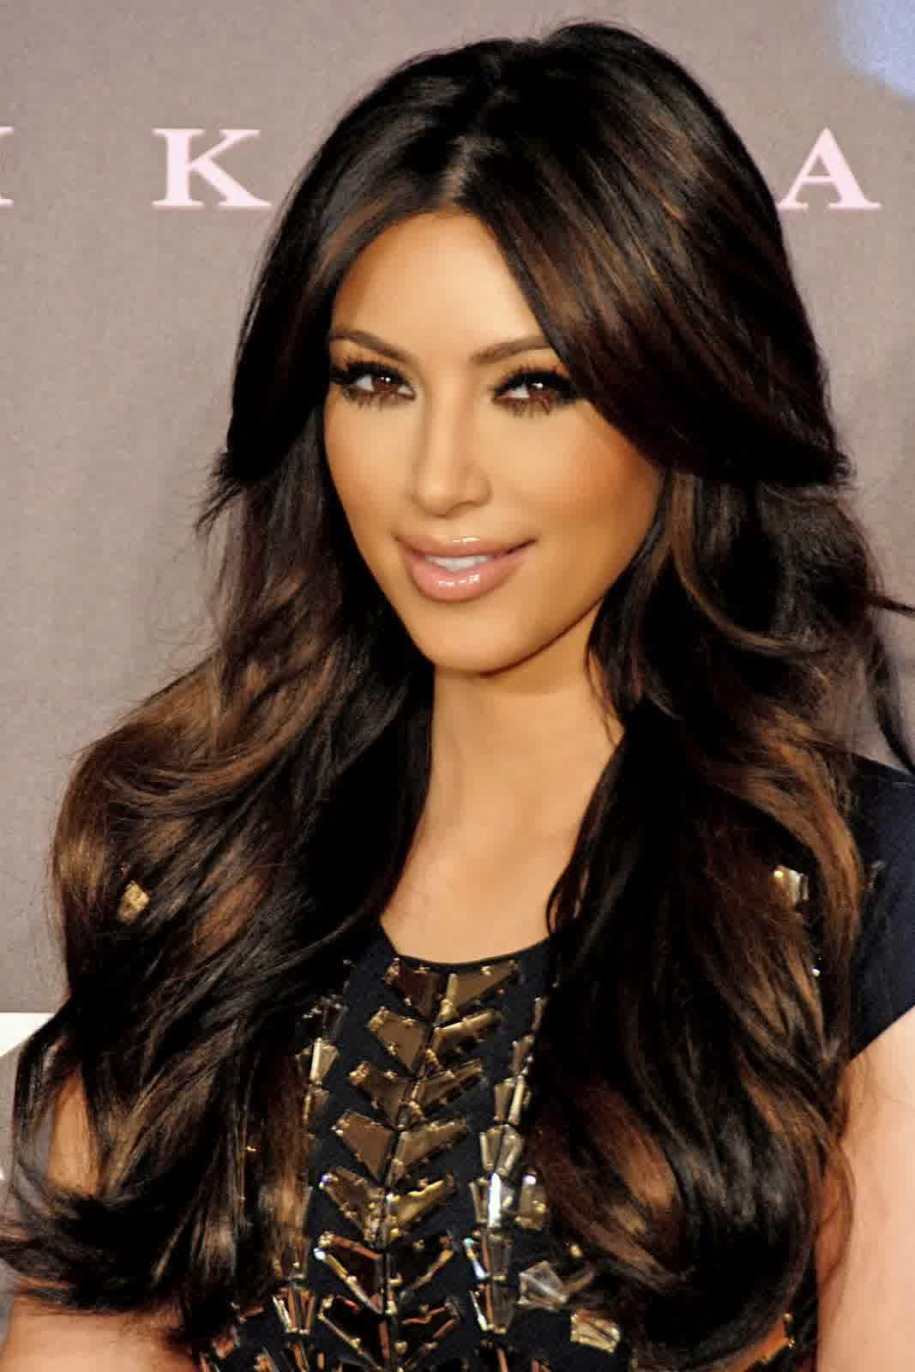 25 best shades of brown hair best ideas for brown hair here is kim k rocking a super chic and dark look she is wearing her famous curls in a jet black with touches of brown we love how this all ties together pmusecretfo Image collections